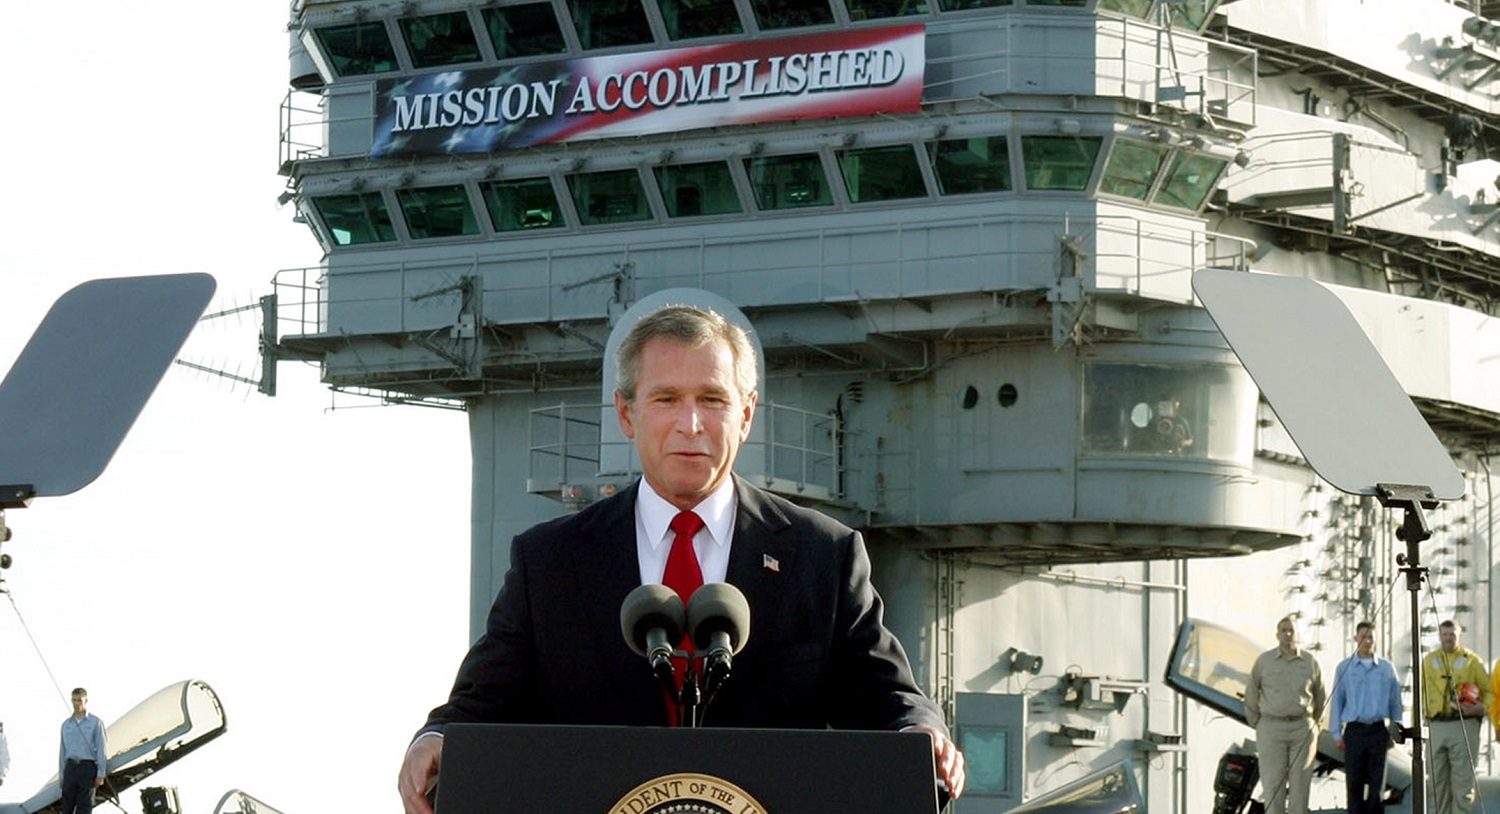 'Modicum of success' is the new 'Mission Accomplished' for Afghanistan